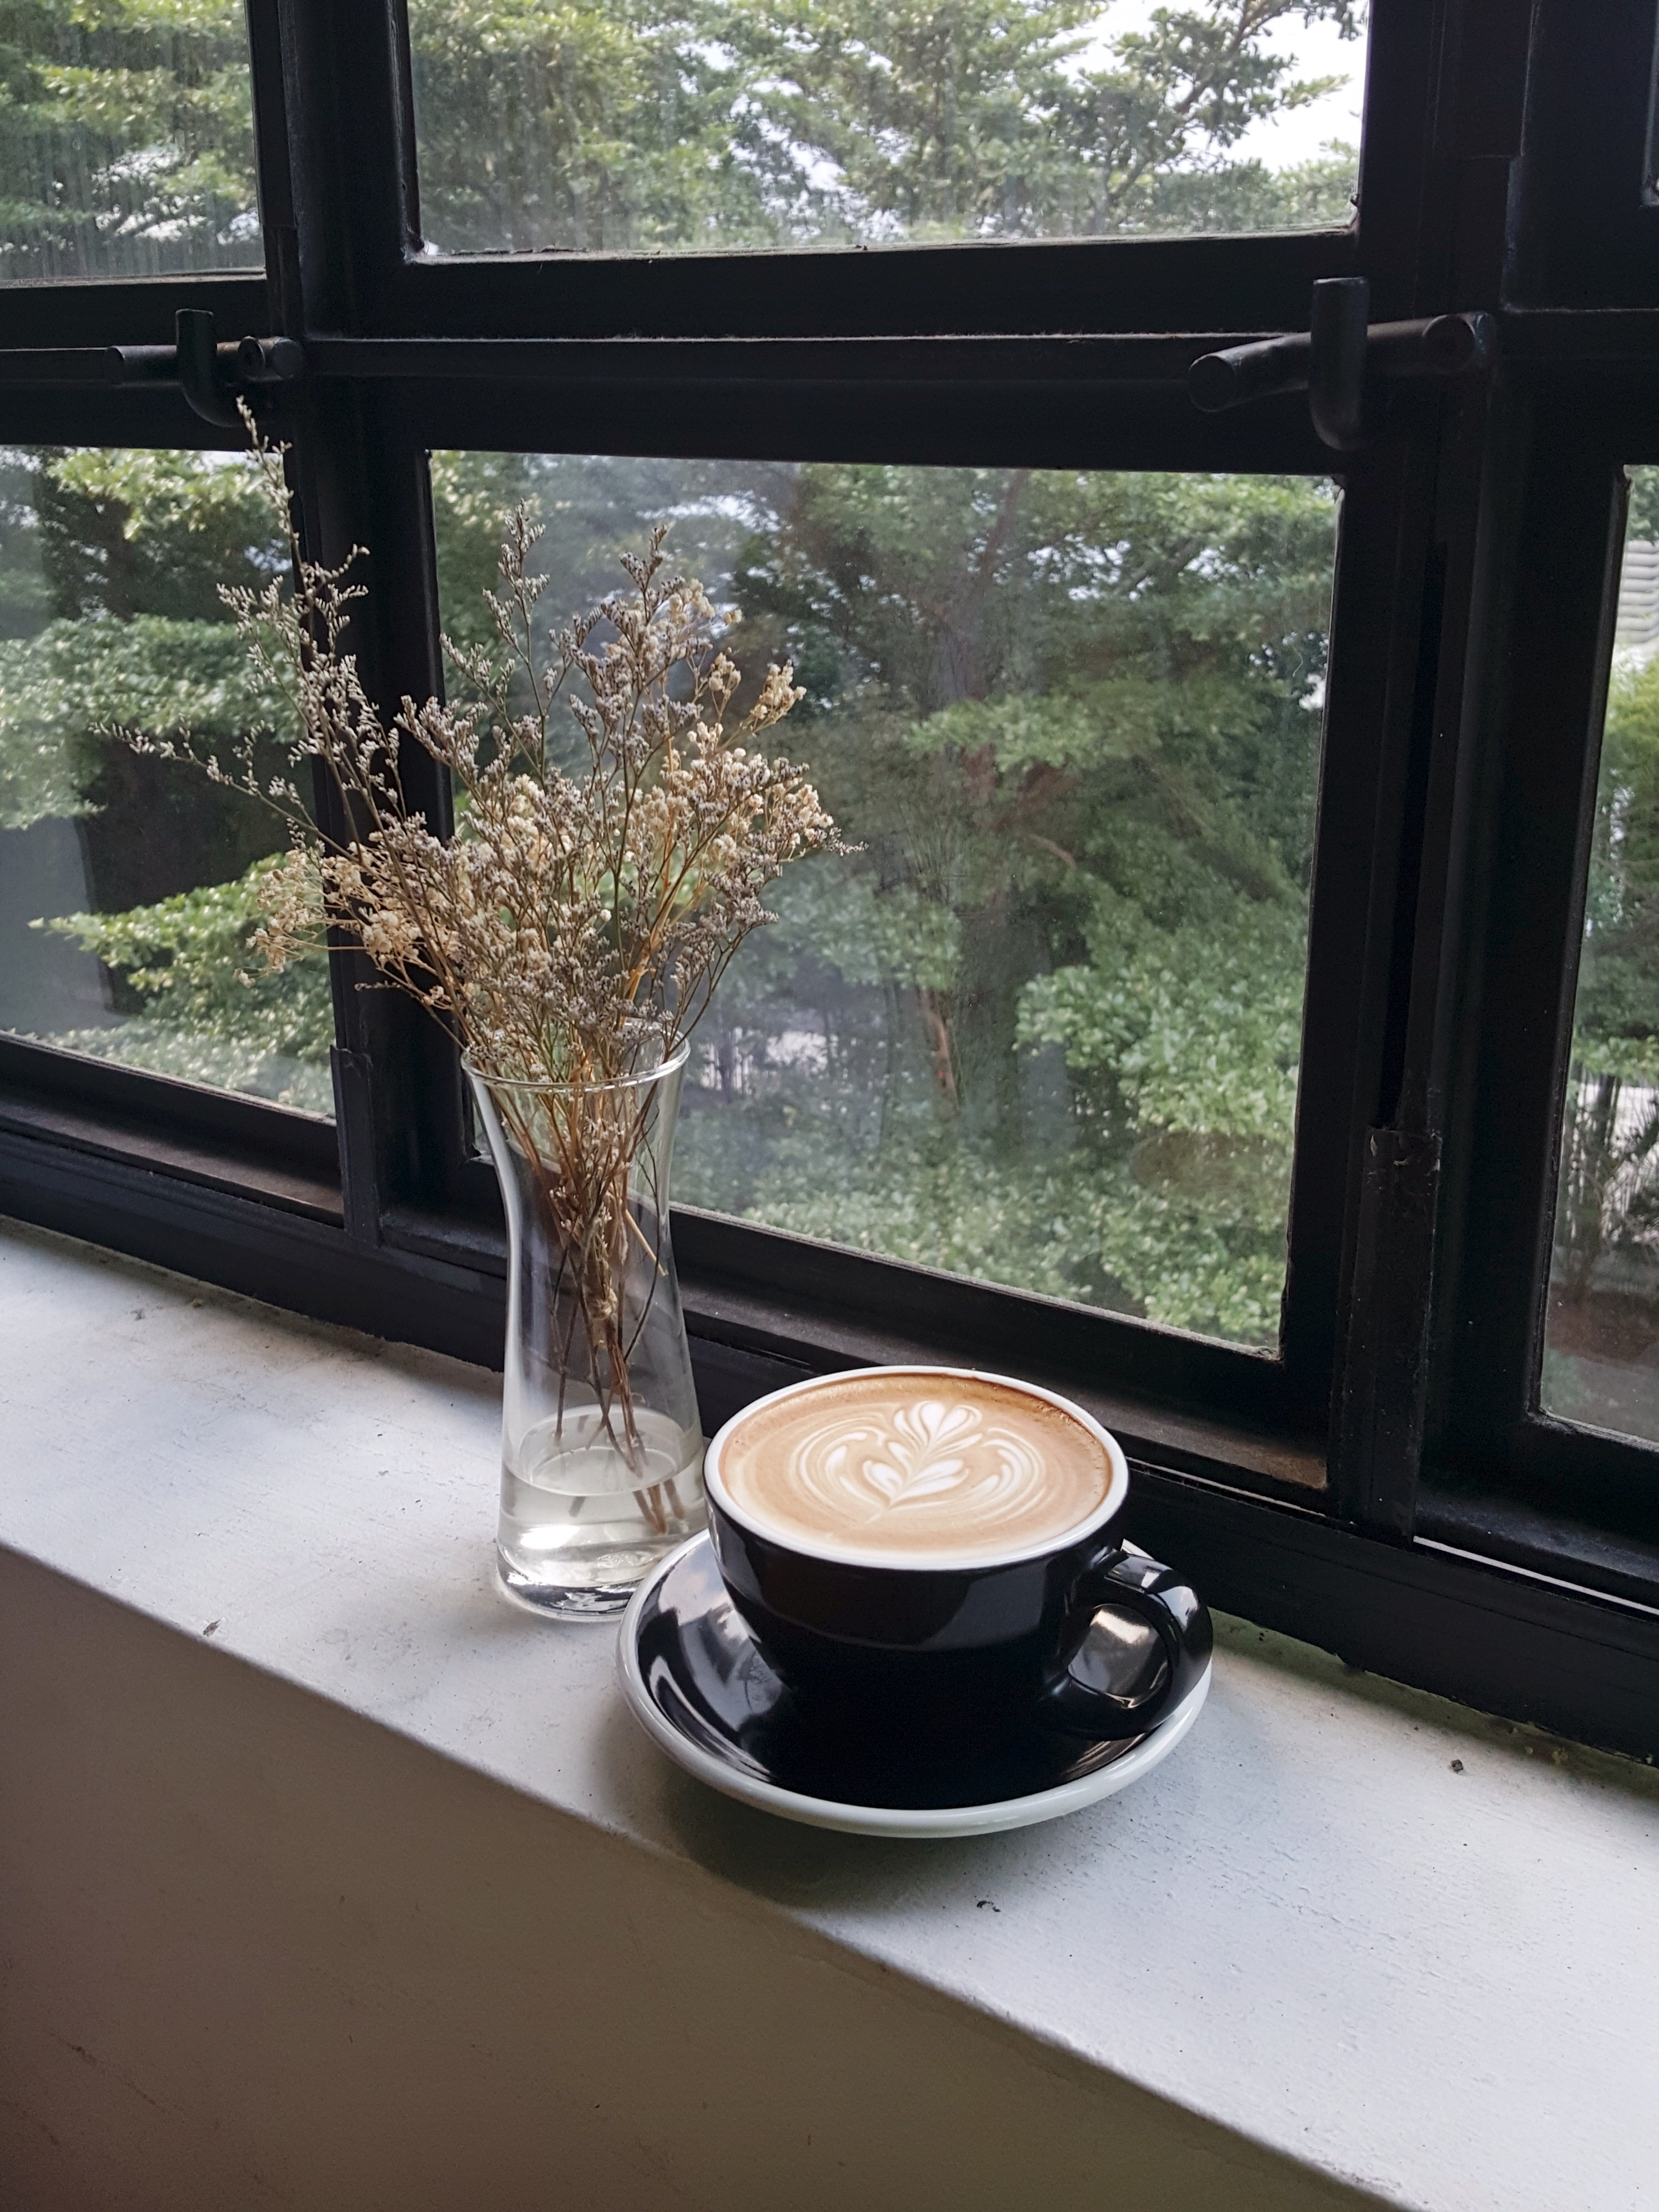 Hd Nature Wallpapers For Windows 7 Free Download Window Window Ledge Coffee And Plant Hd Photo By